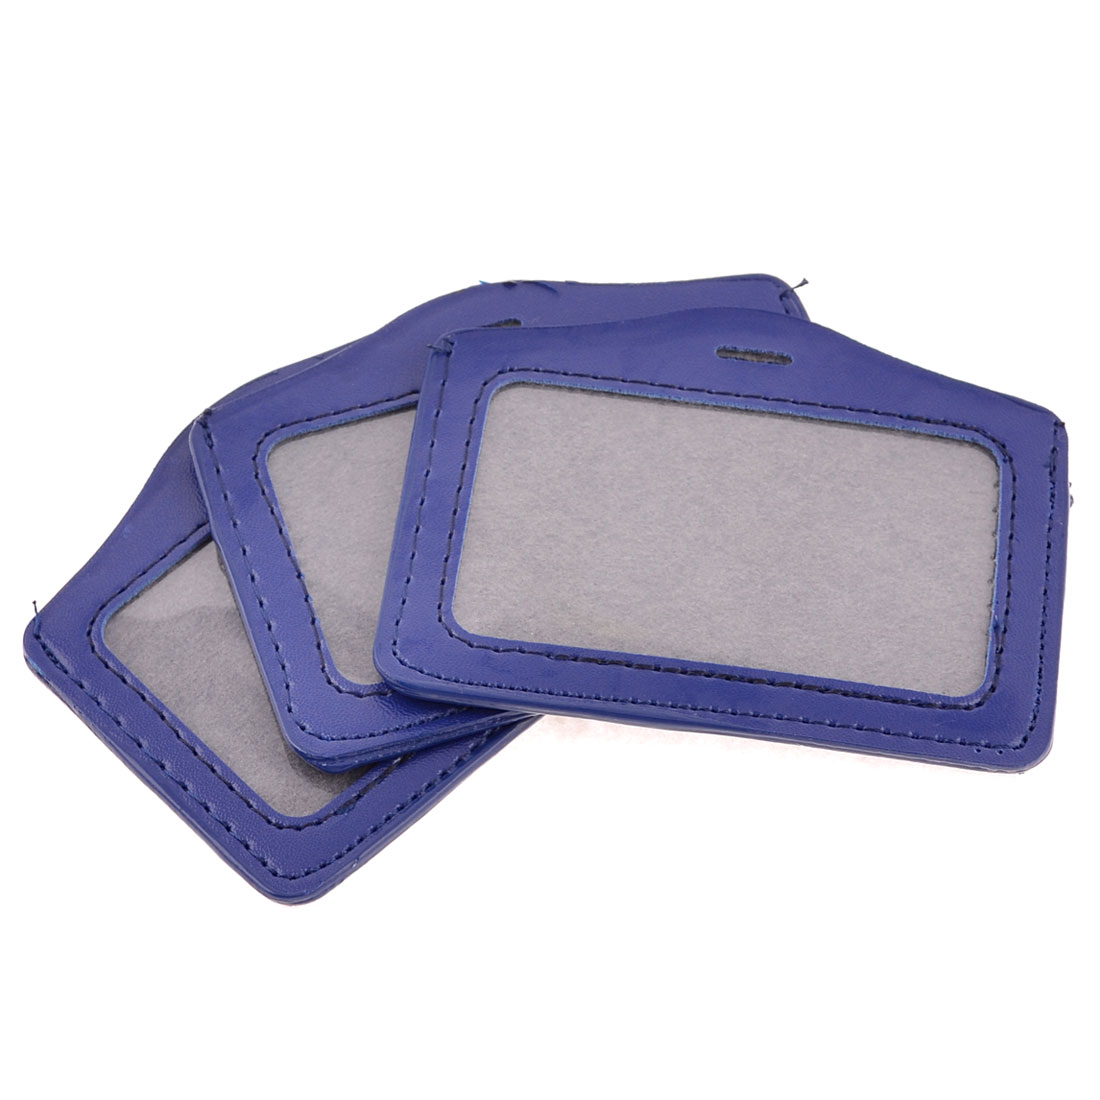 3 Pcs Dark Blue Faux Leather Clear Plastic Business ID Work Card Holder